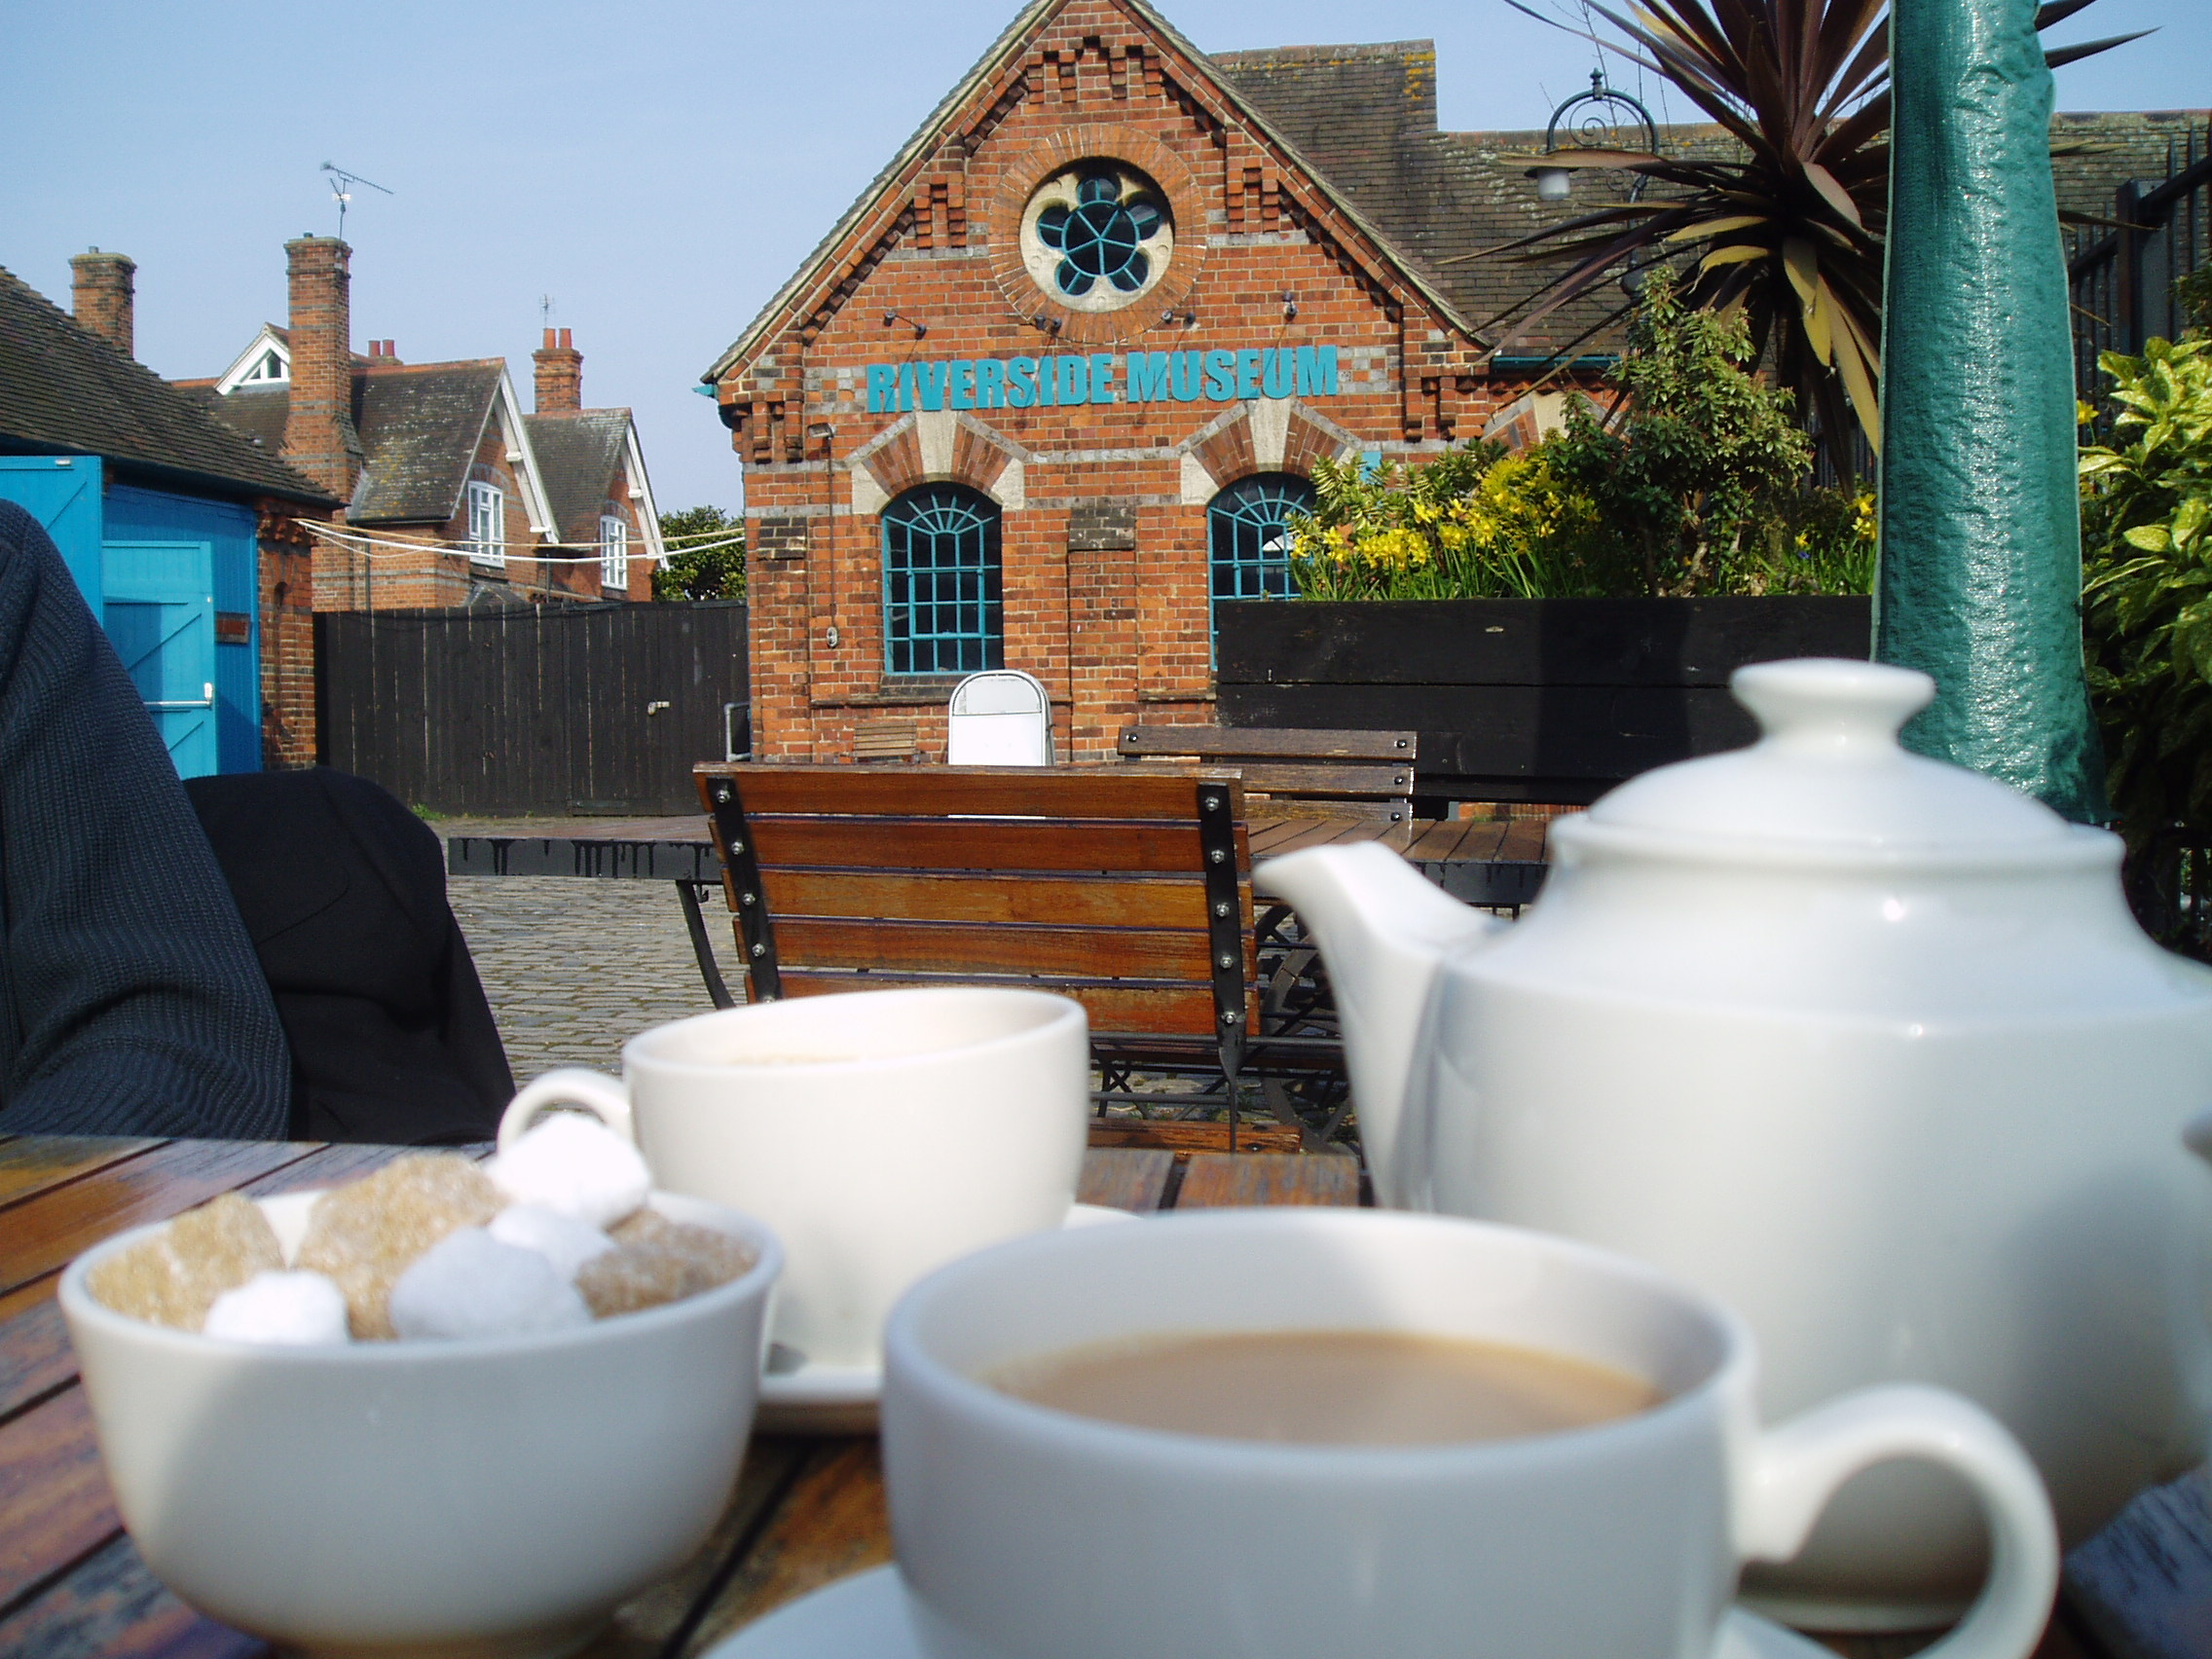 Tea at Bel and The Dragon, with the Riverside Museum in the background